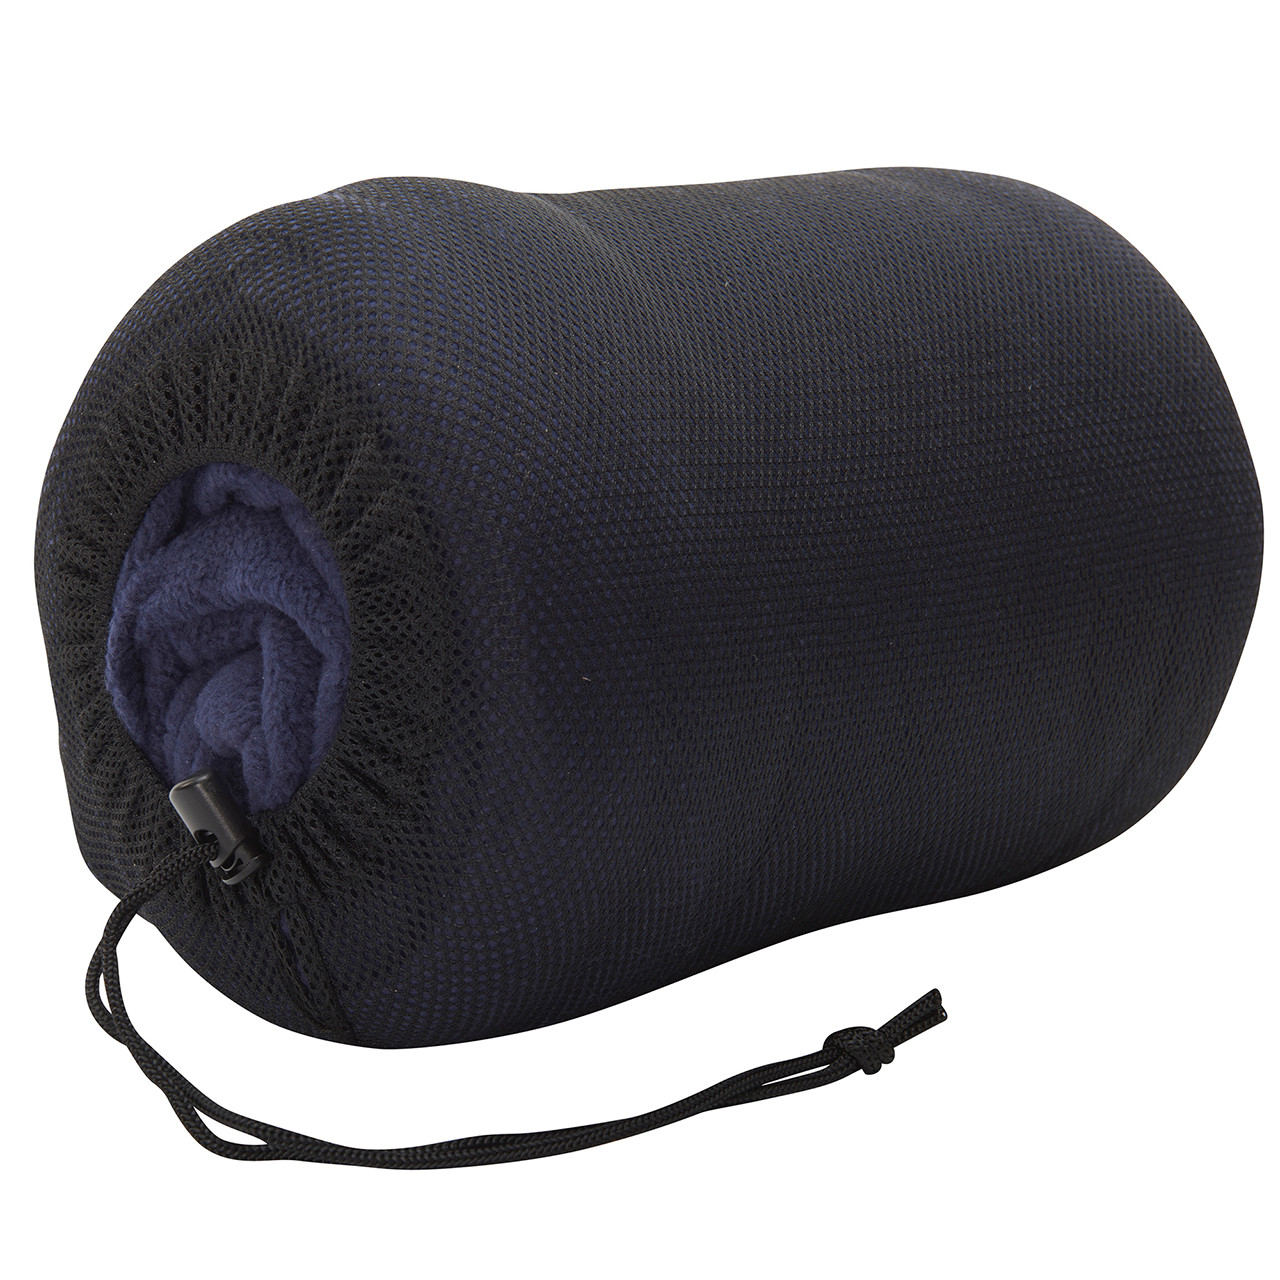 Wenzel Flannery Fleece sleeping bag, purple, stored in the black mesh storage bag